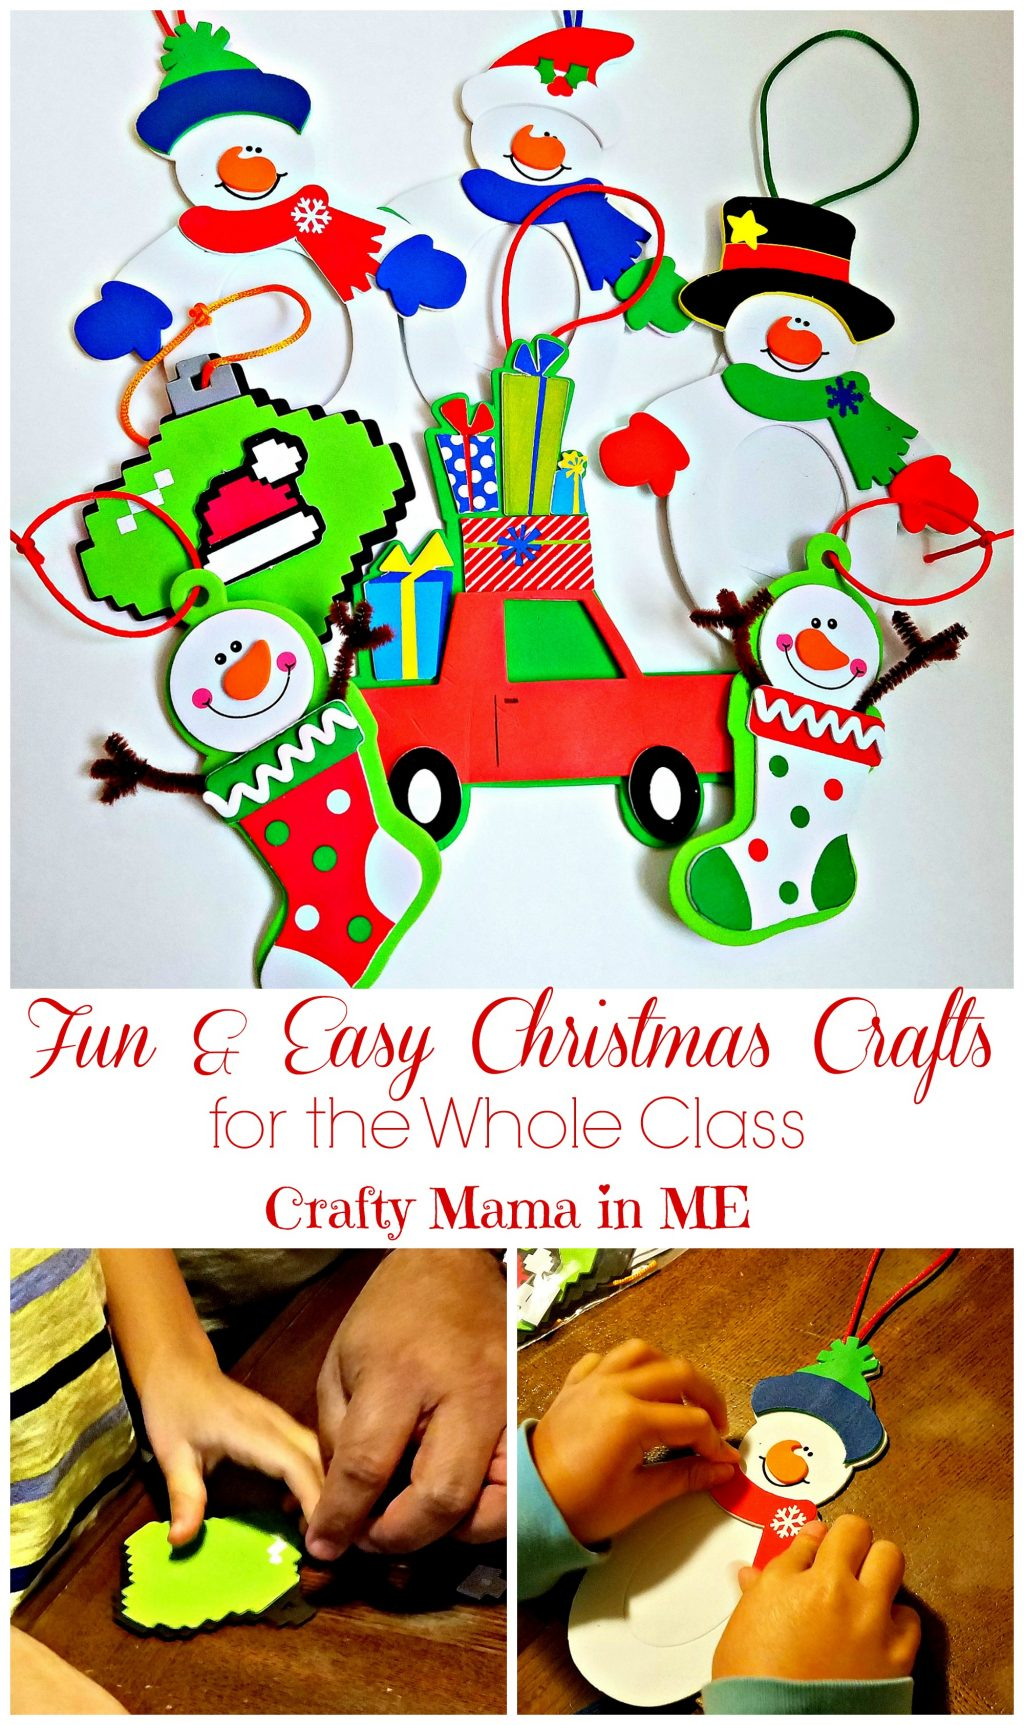 Fun & Easy Christmas Crafts for the Whole Class